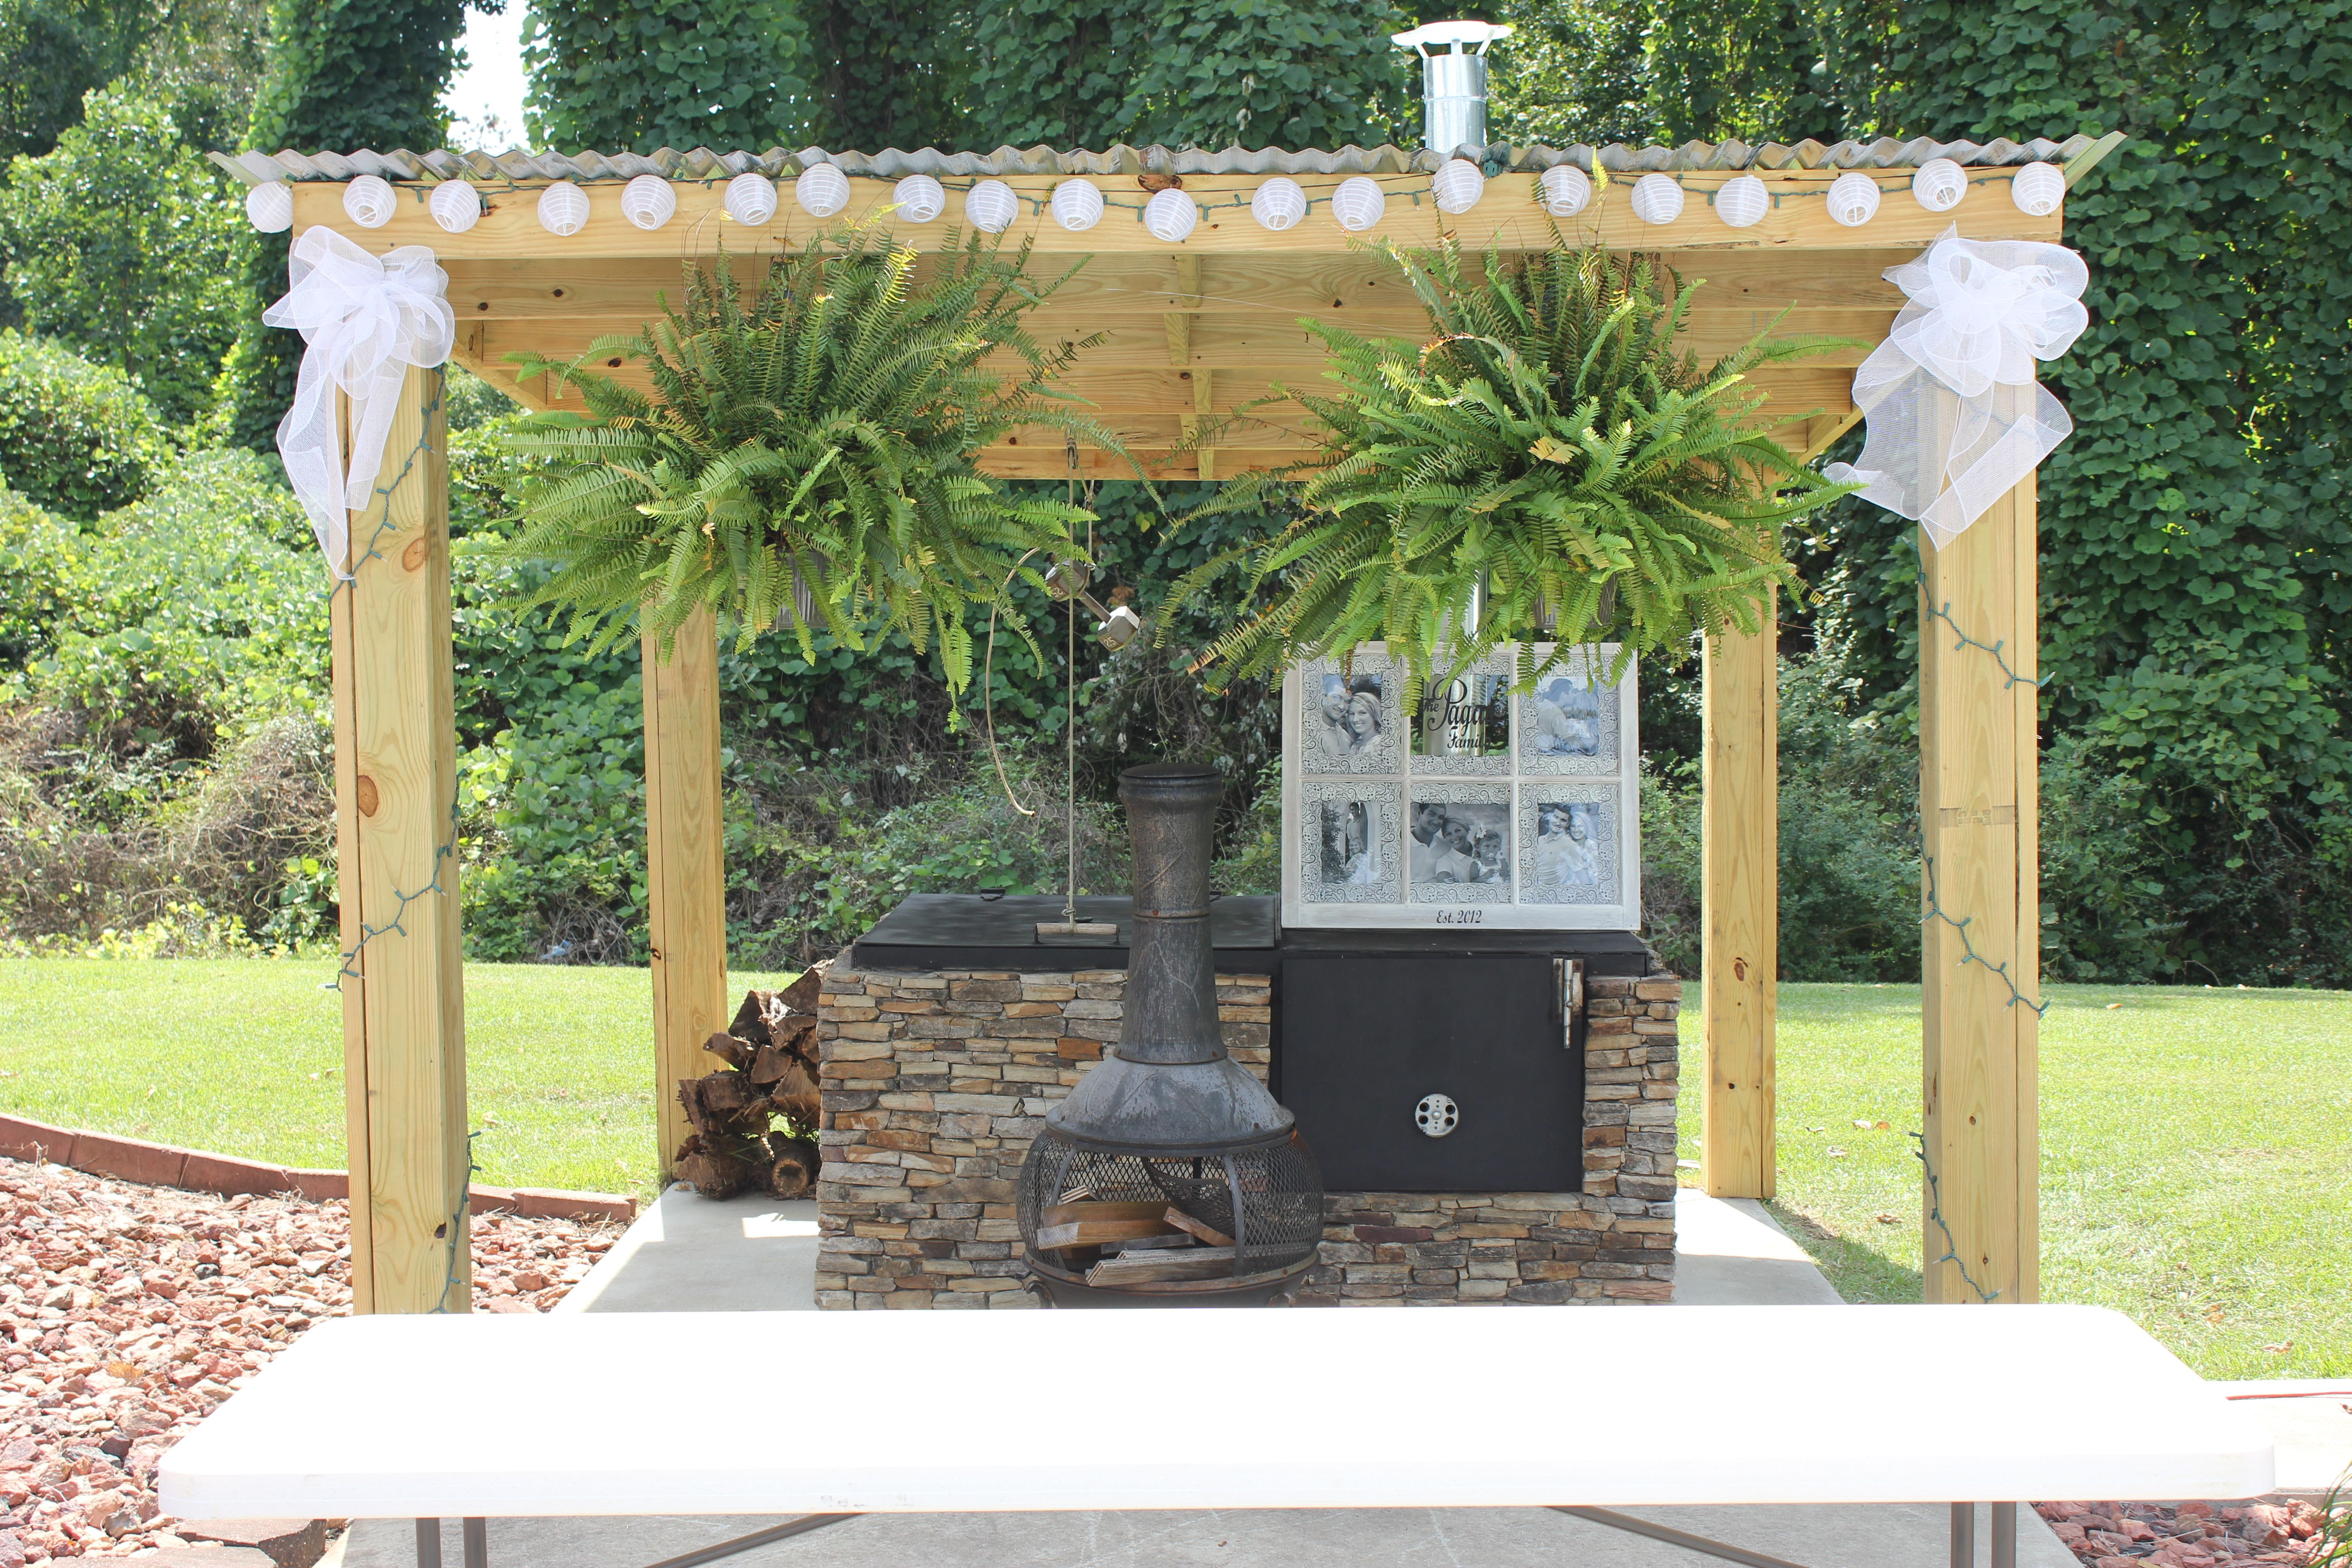 Outdoor wedding wedding ideas pinterest for Pinterest outdoor wedding ideas